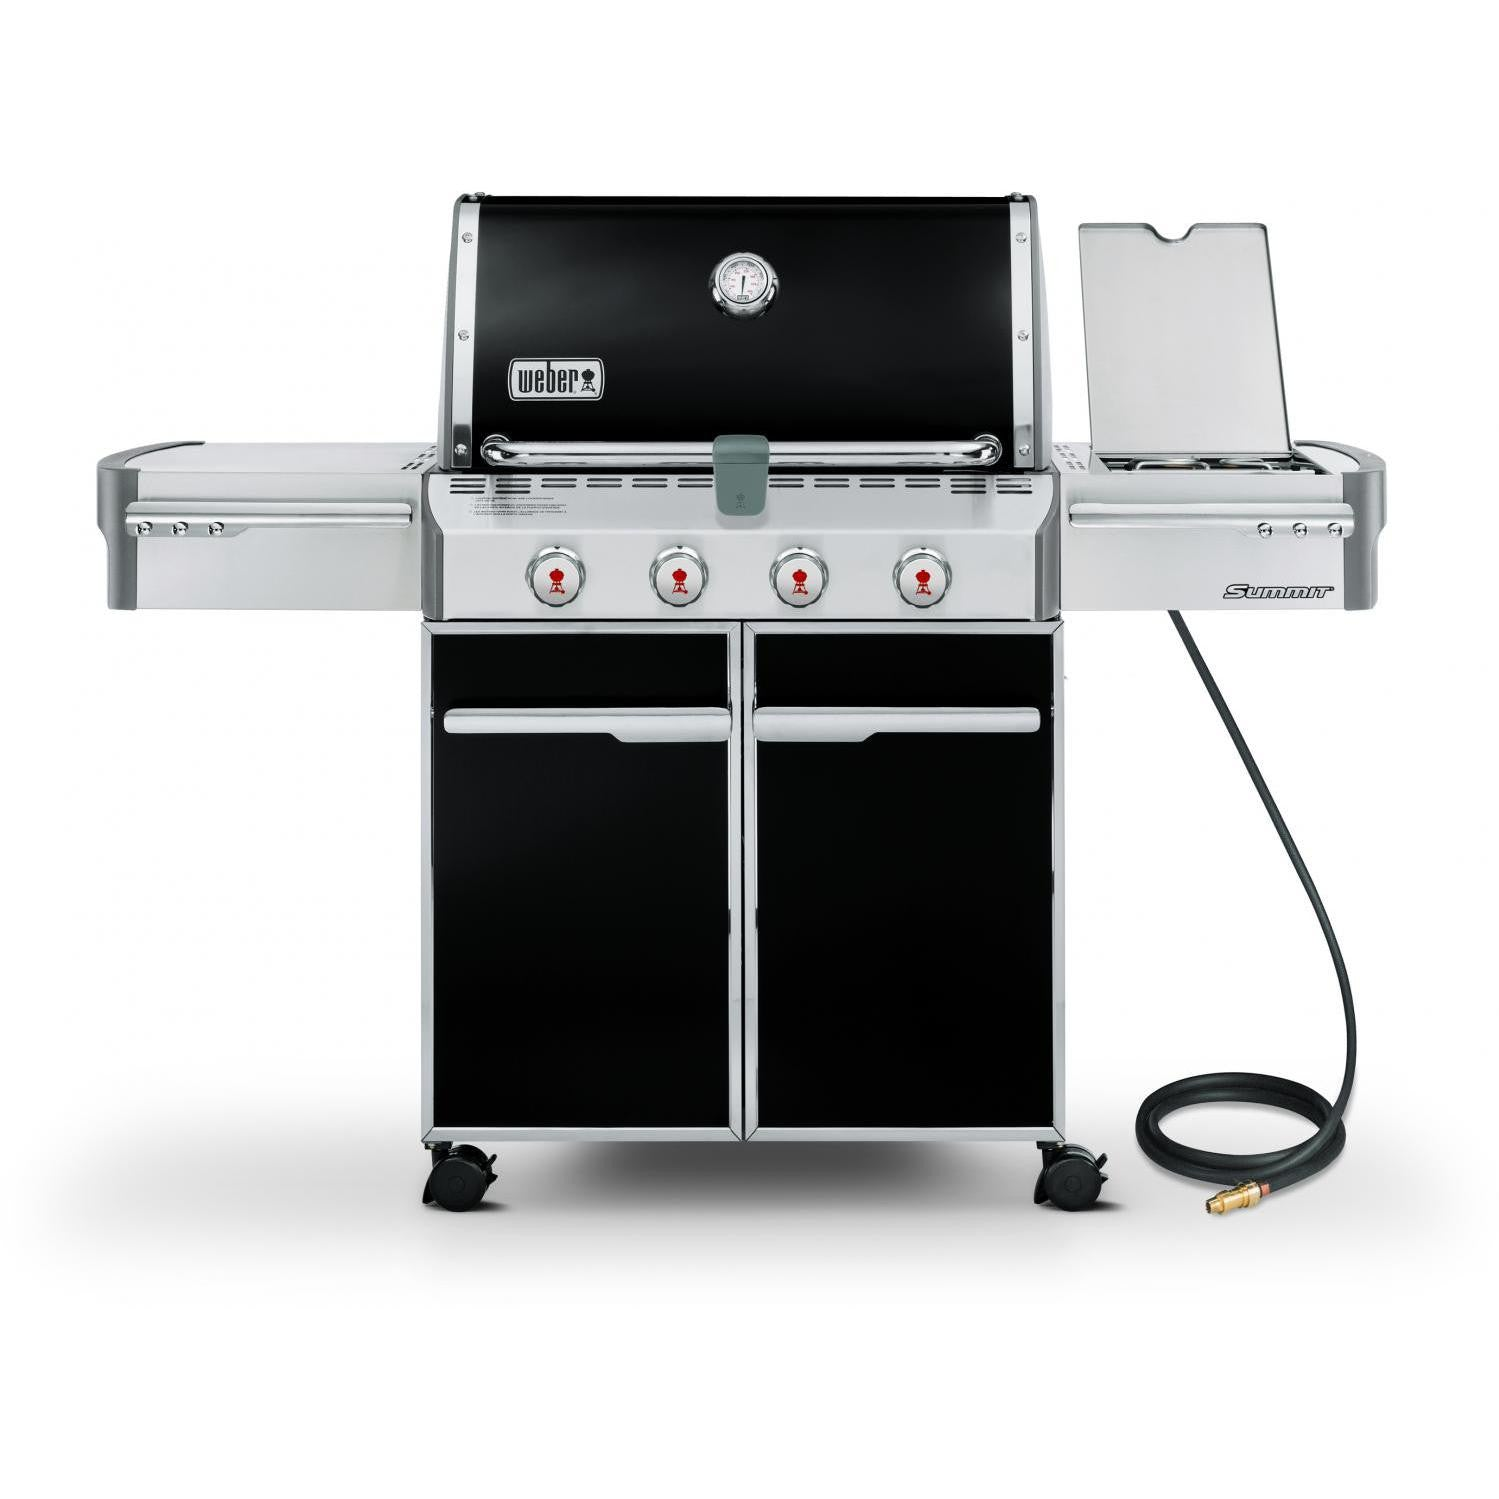 Weber Summit E-420 Freestanding Natural Gas Grill With Side Burner - Black